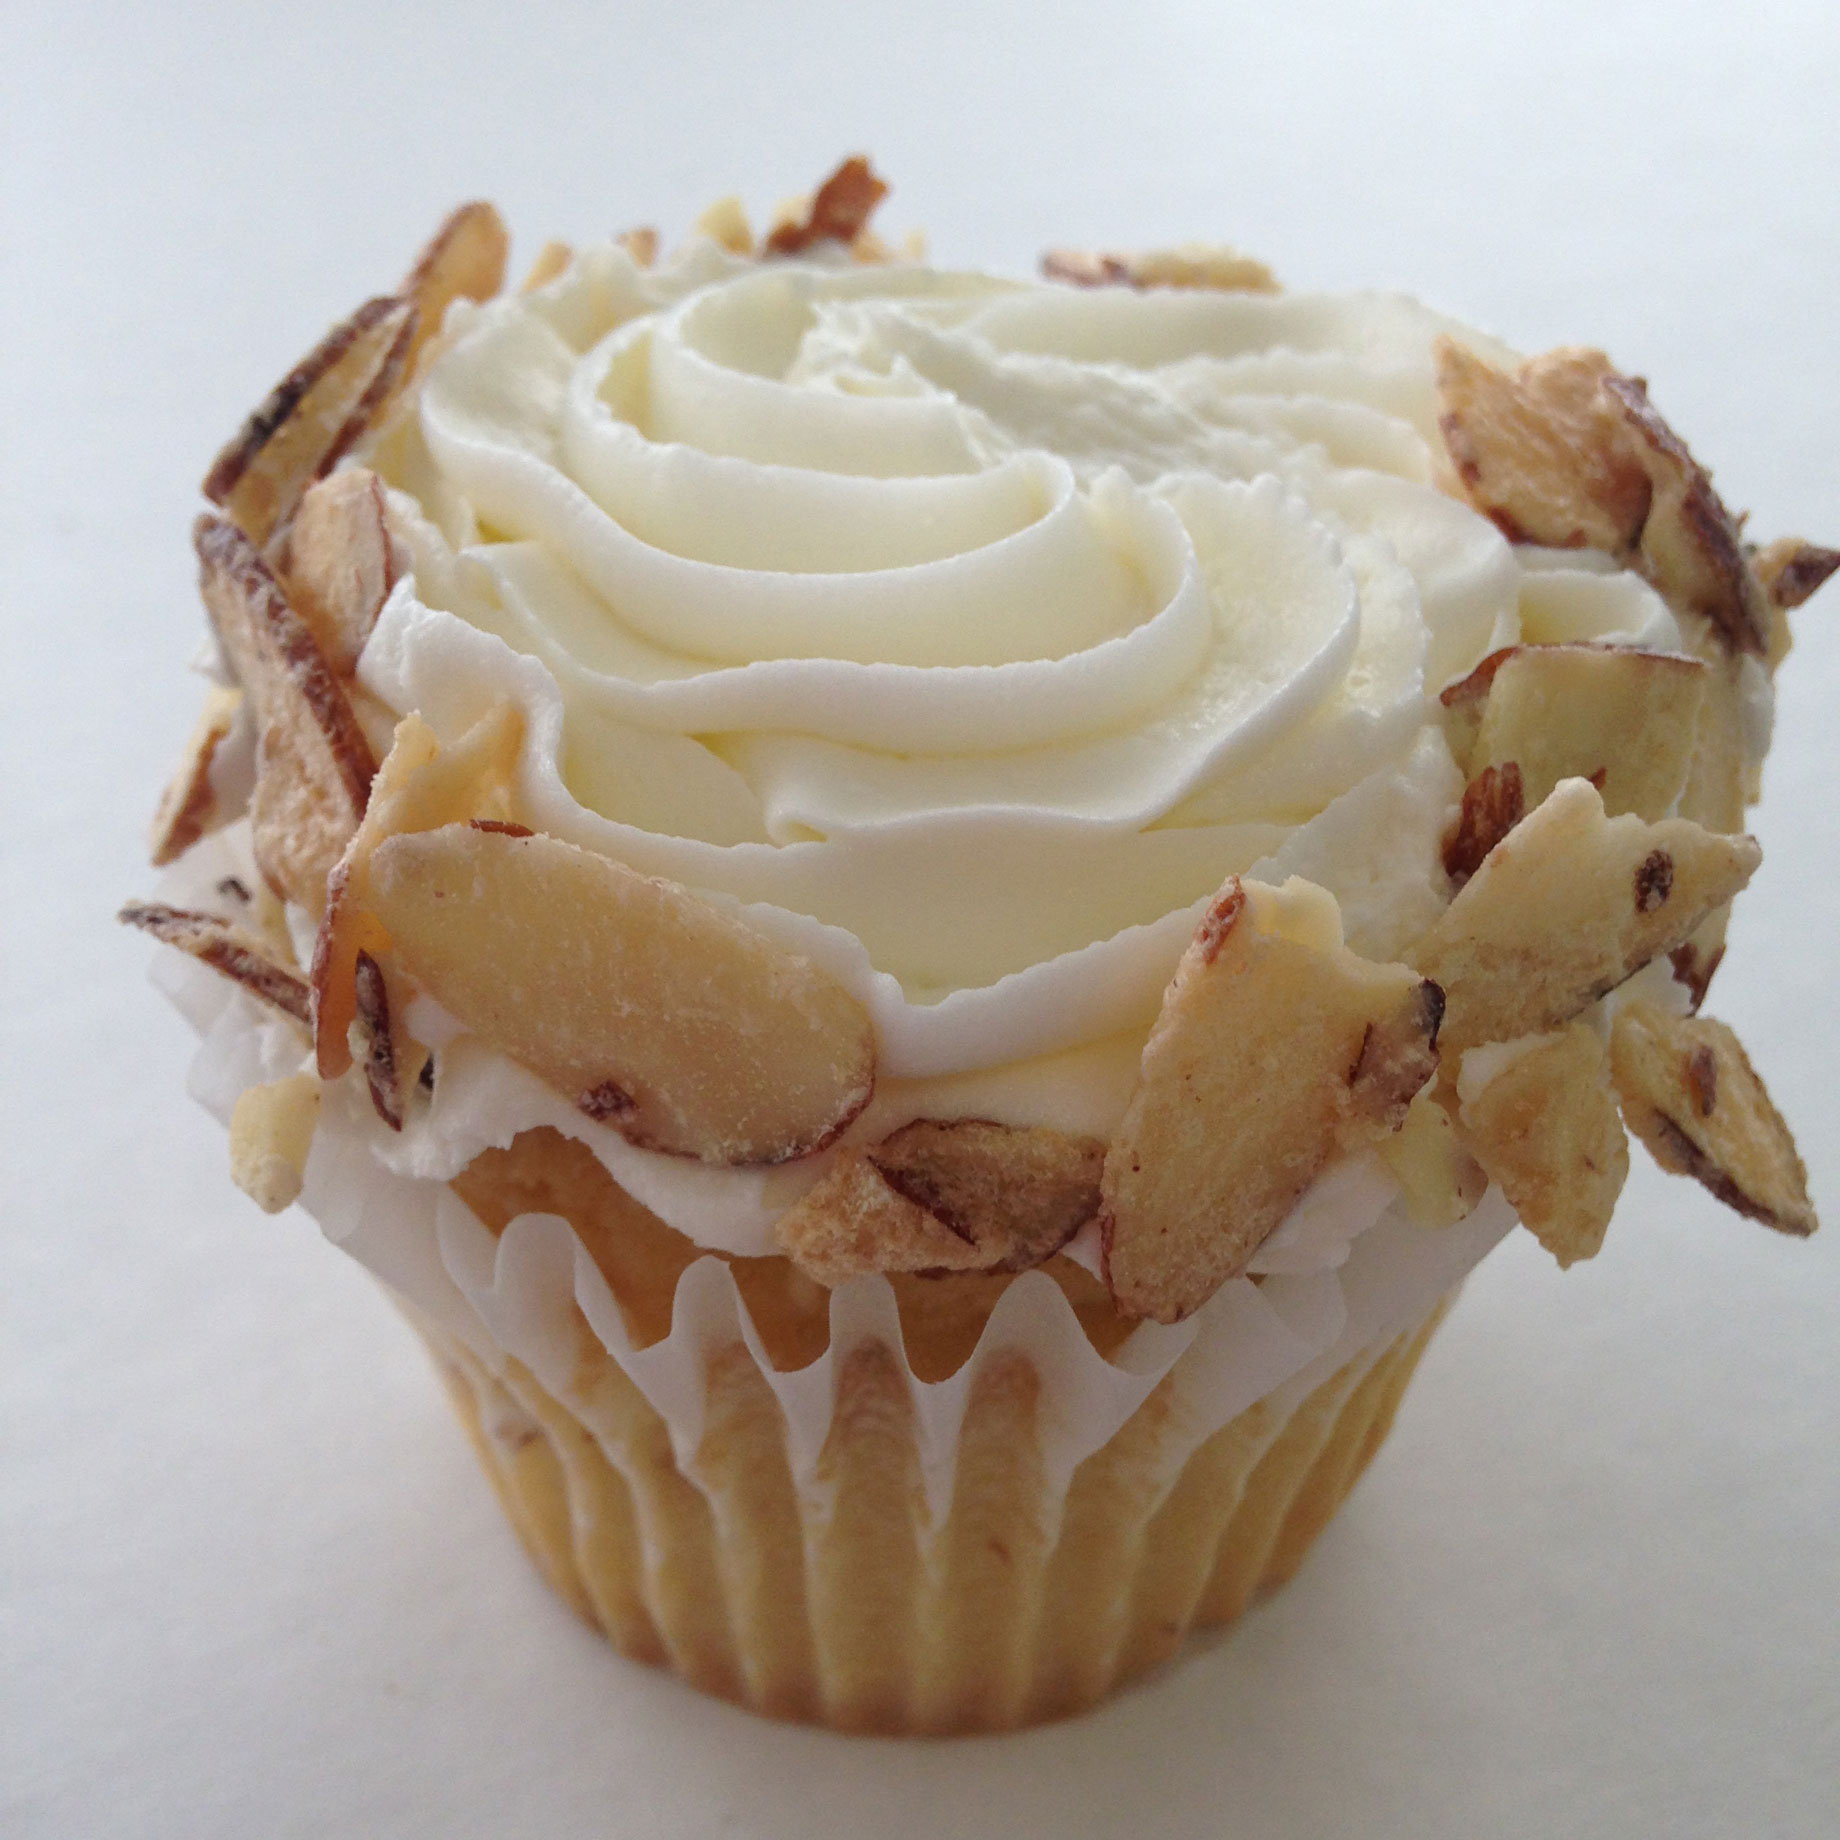 Candied Almond Cupcake